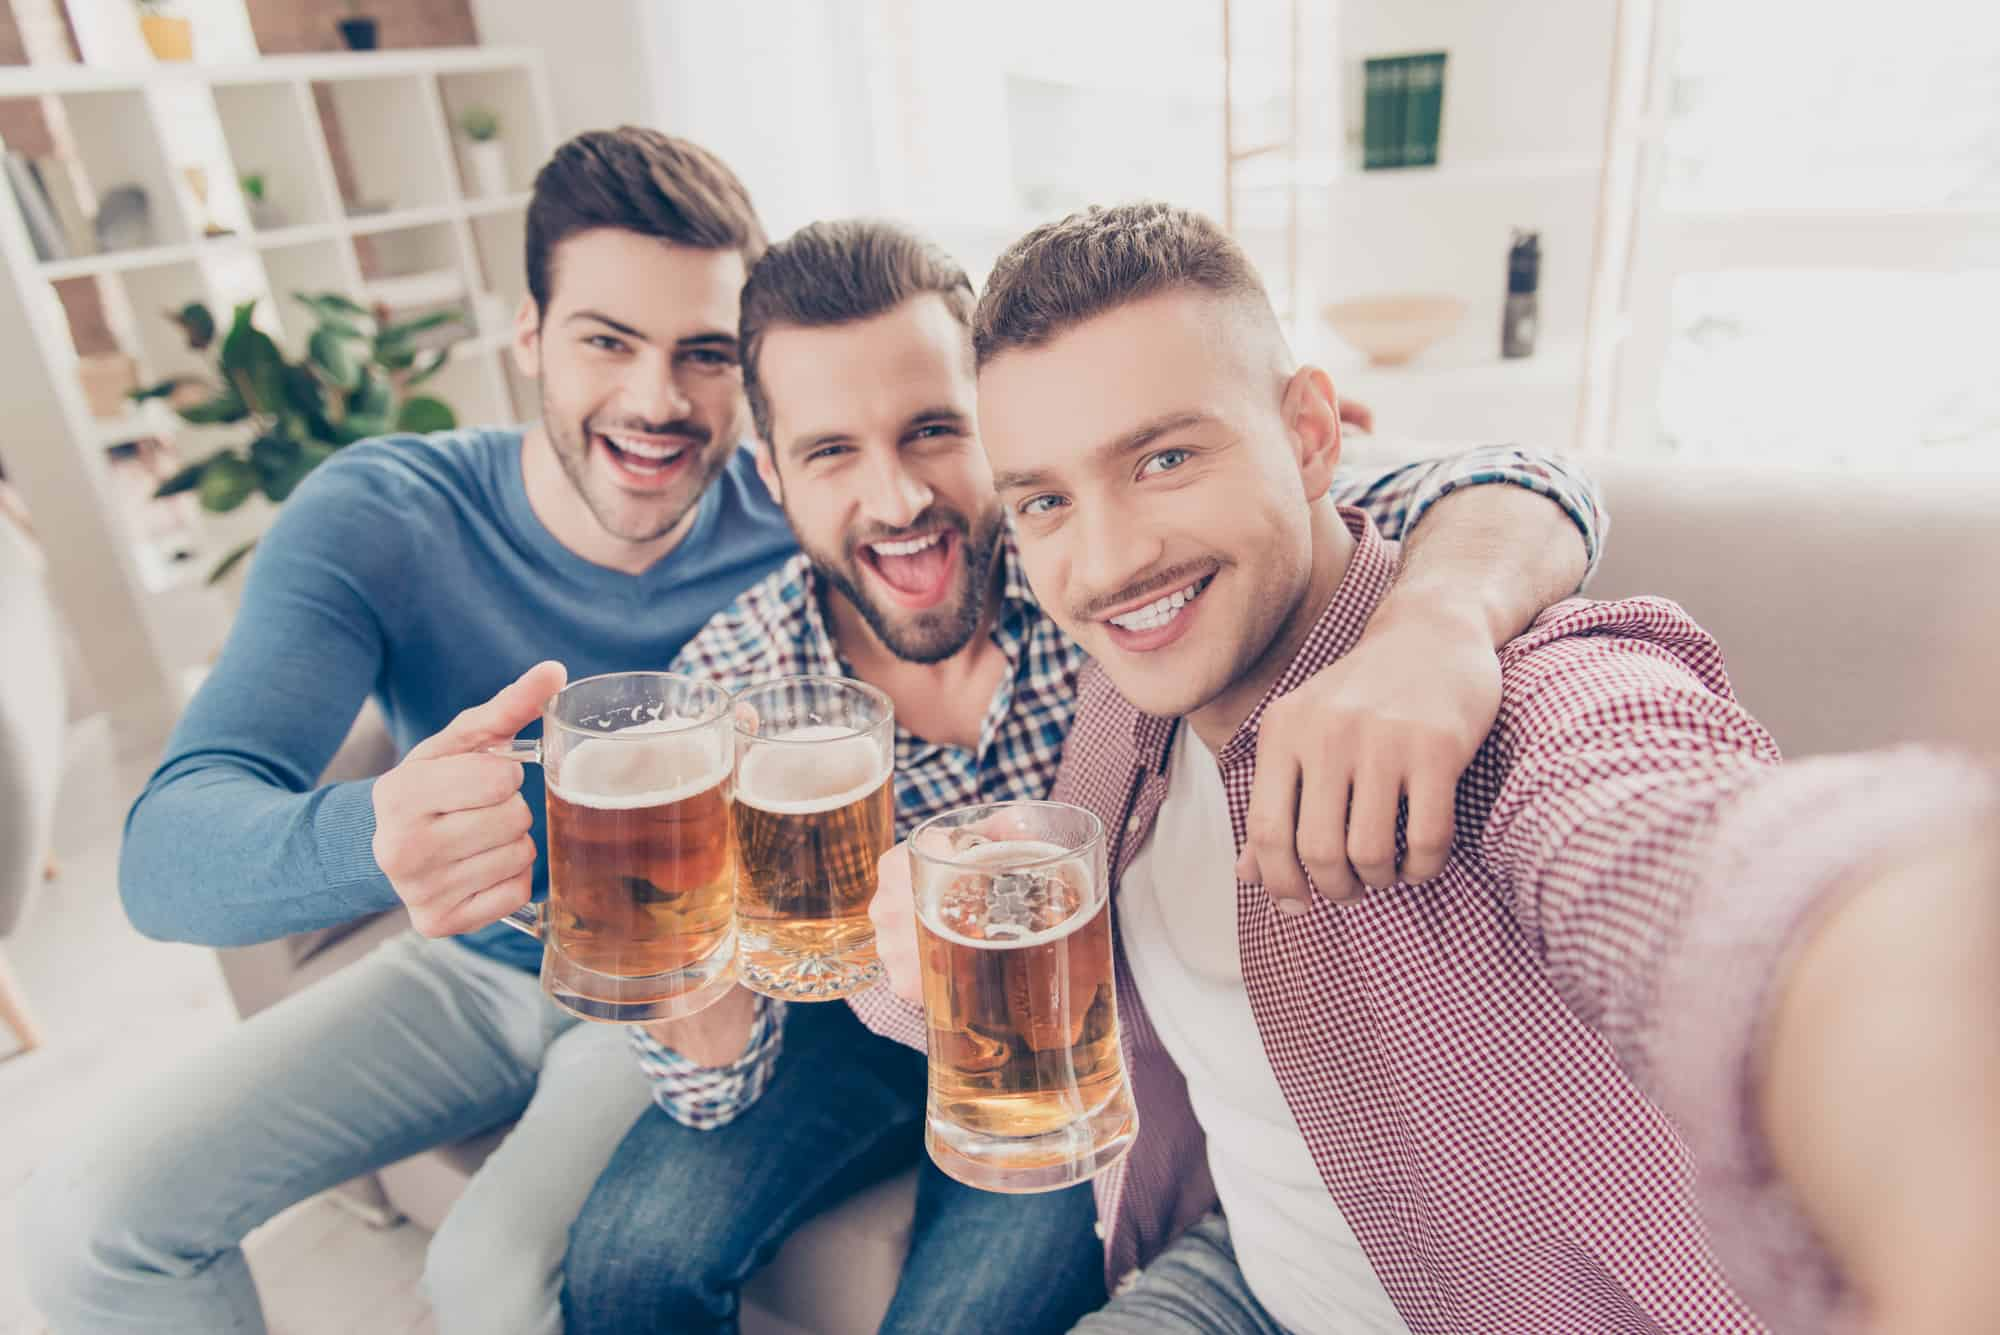 How to Be a Best Man: Planning the Stag Party